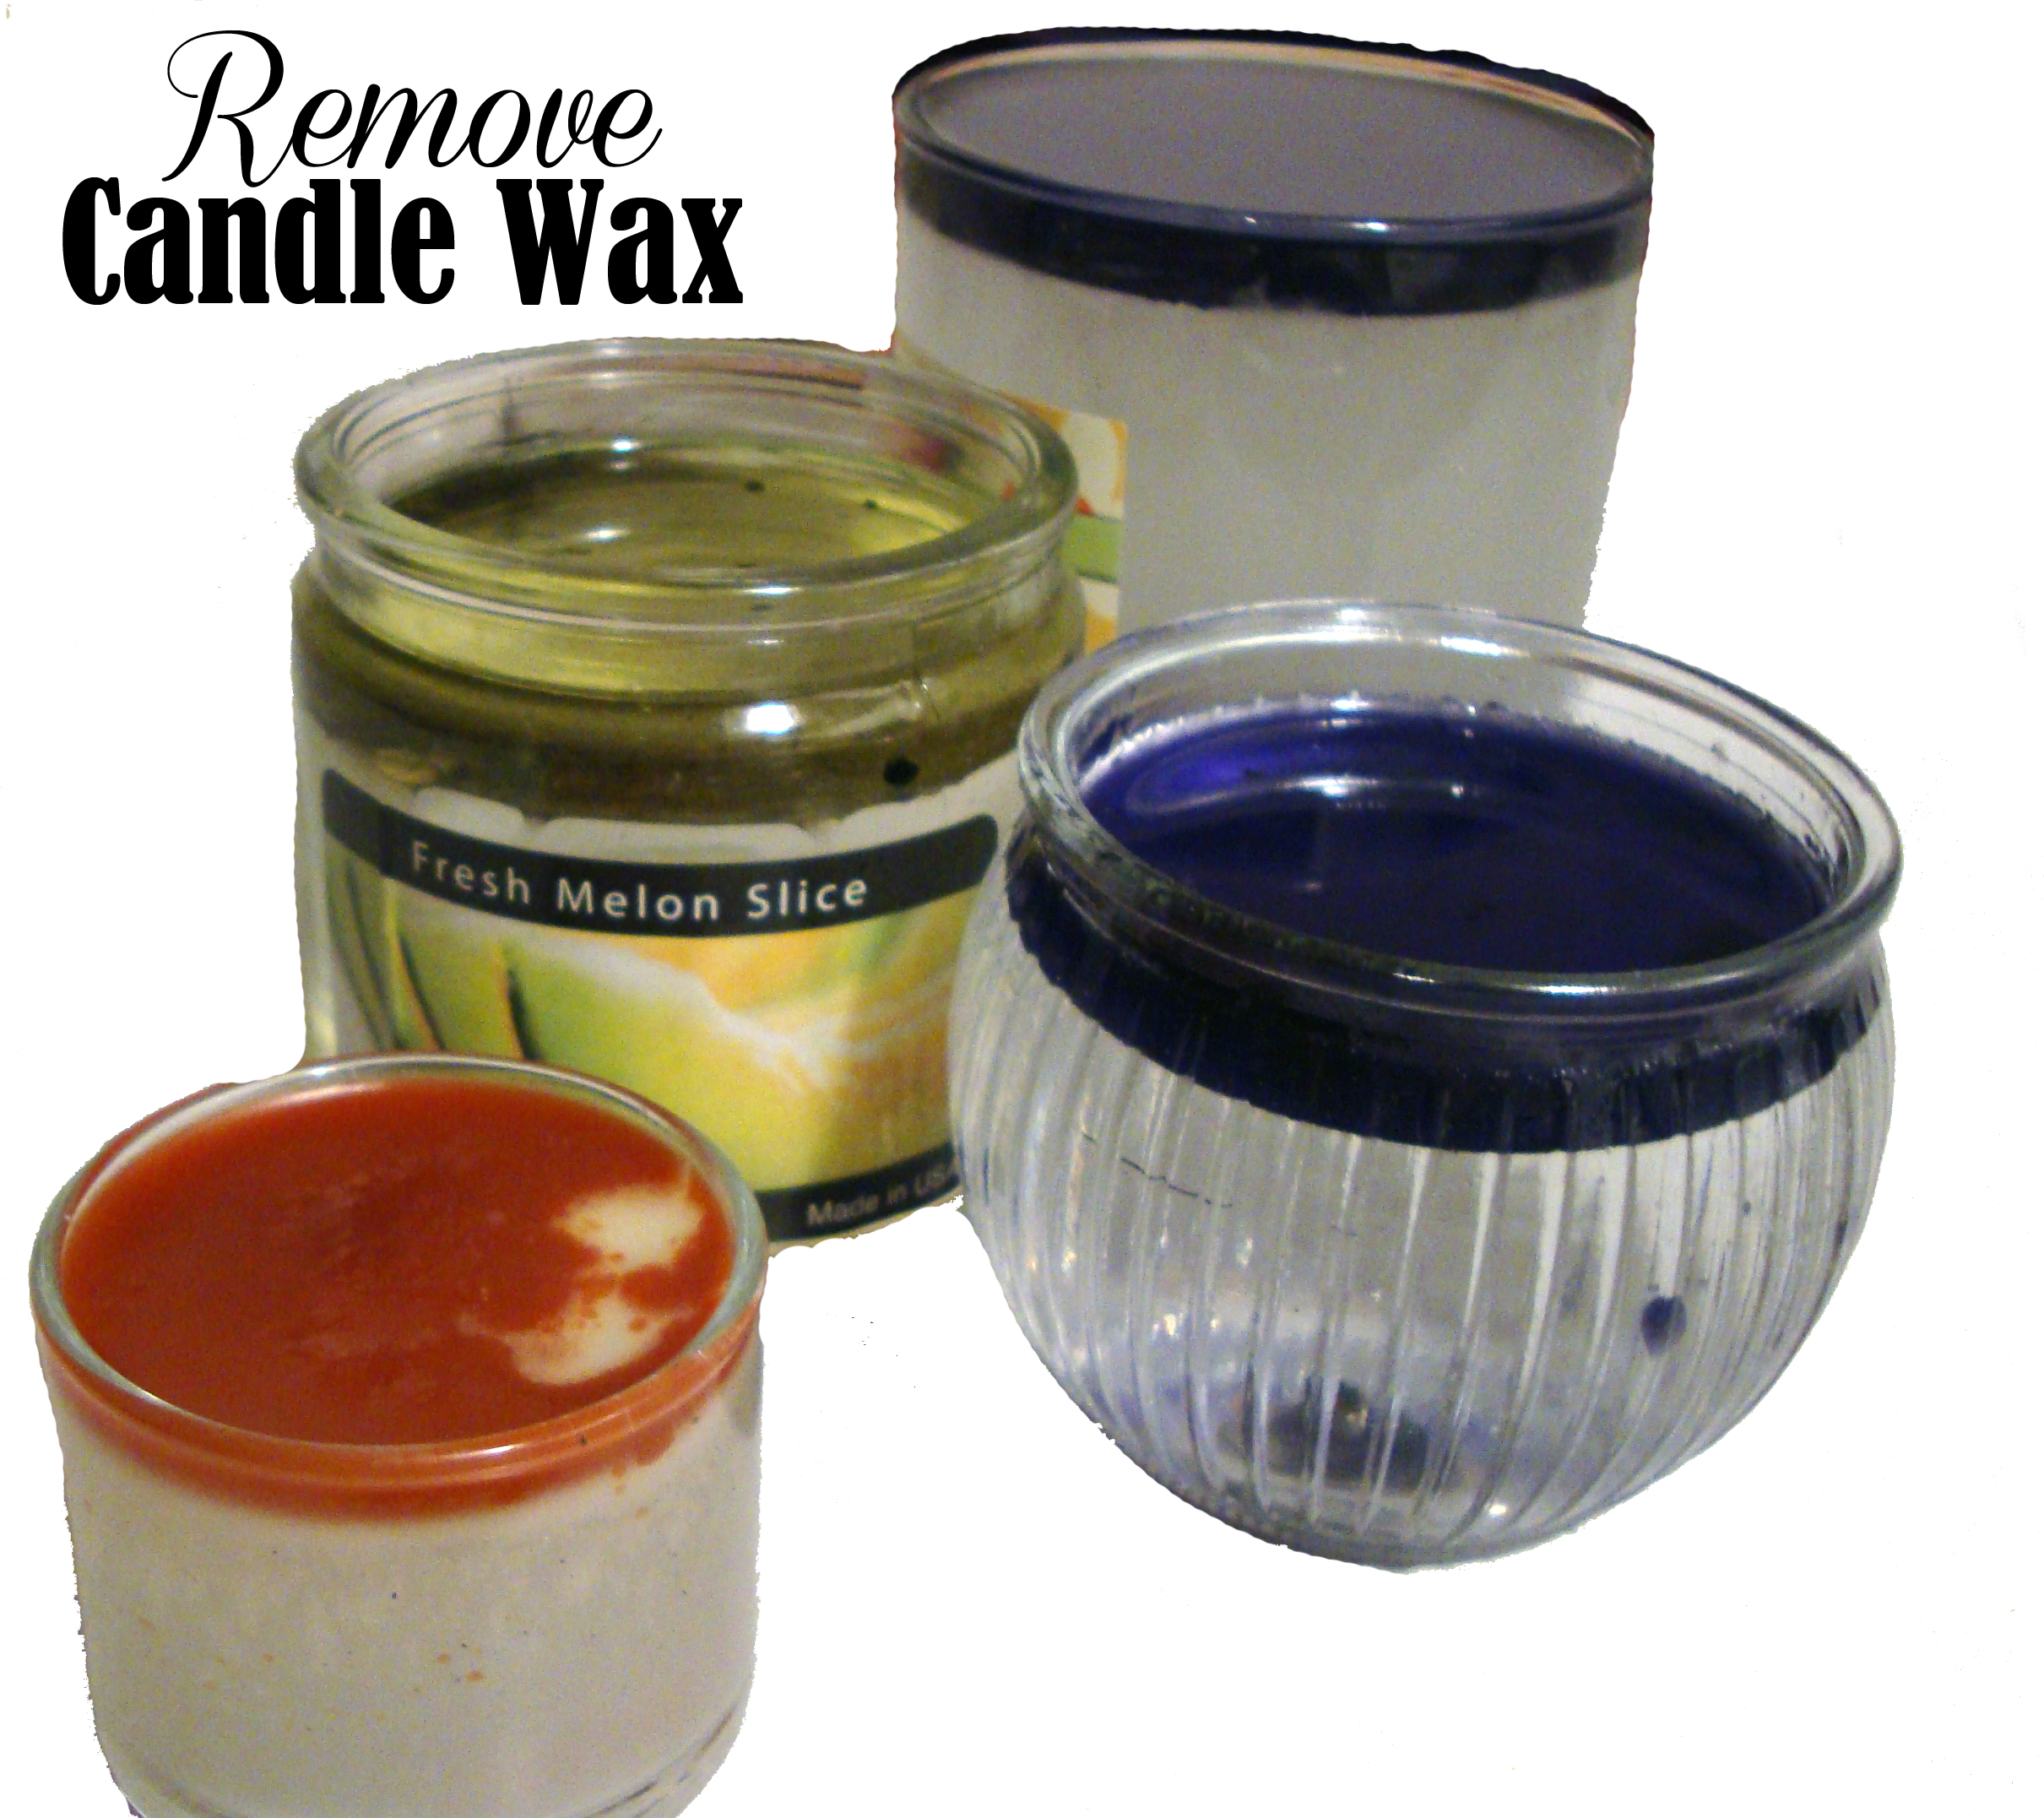 Removing Wax From Glass Candle Jars Quarter Past Normal